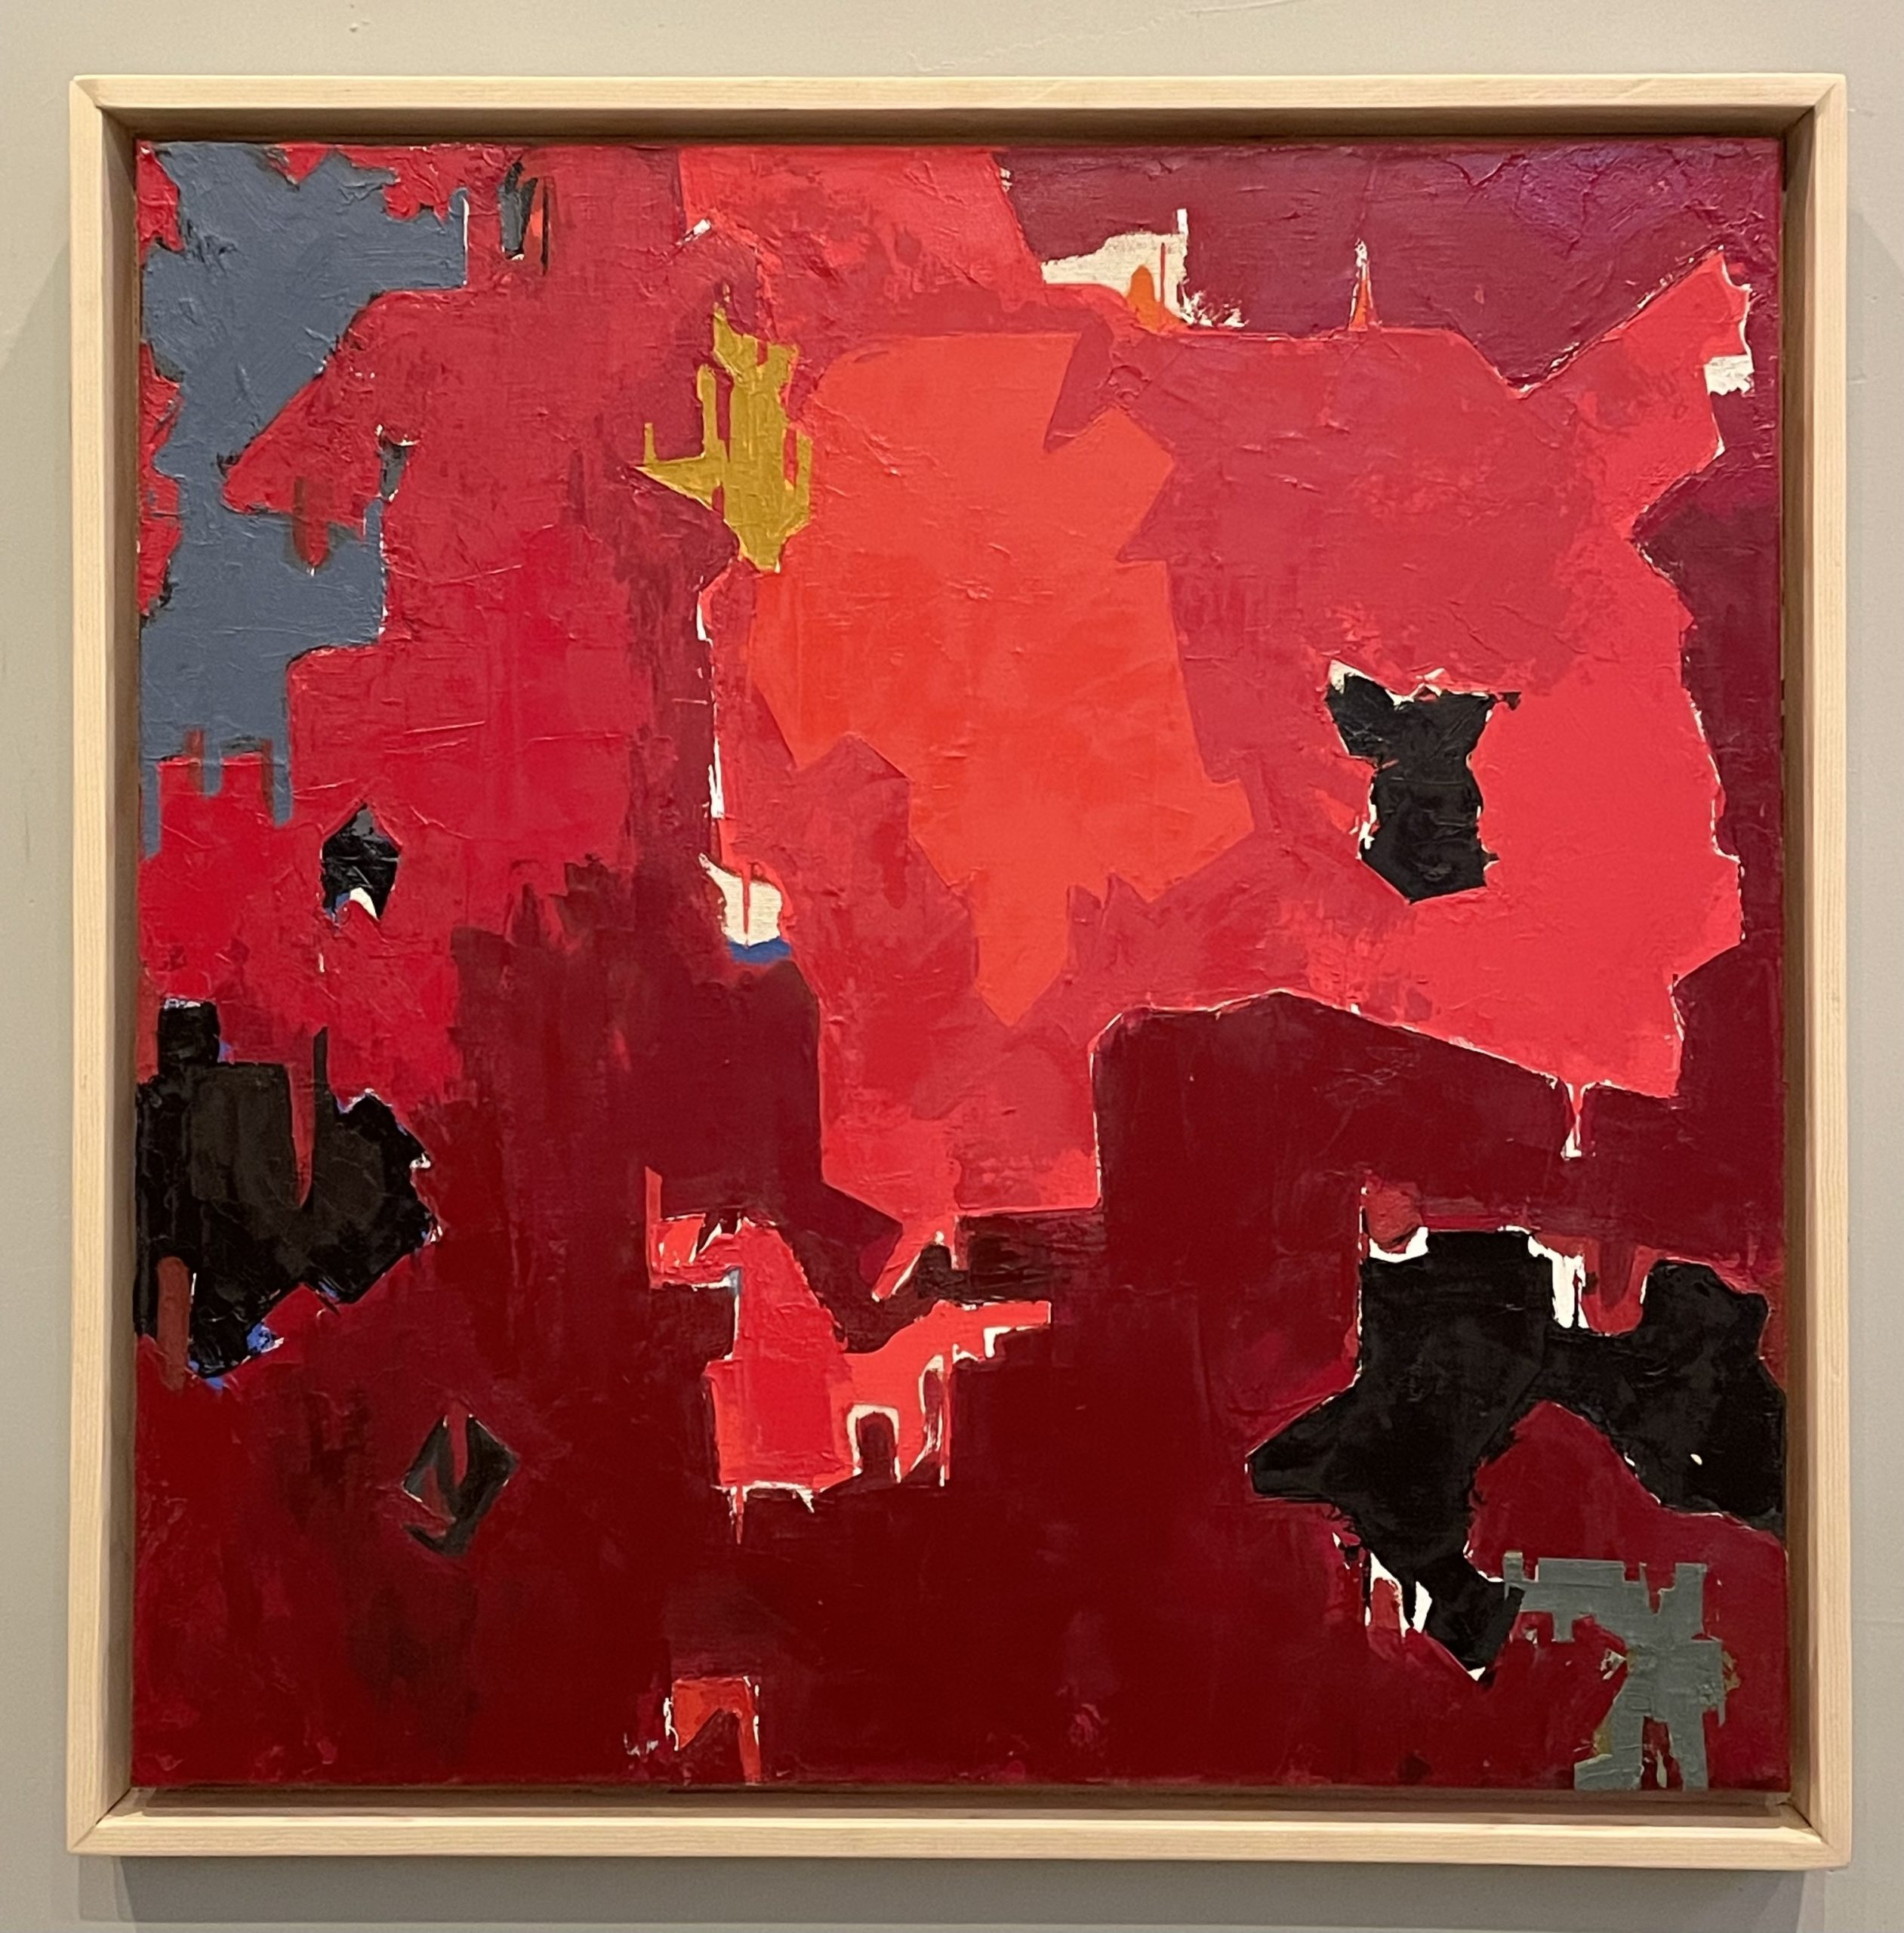 """Kevin Teare """"Clyfford Still As Gerrymandered Republican Congressional Districts,"""" 2020. Oil on canvas, 25"""" x 25""""."""